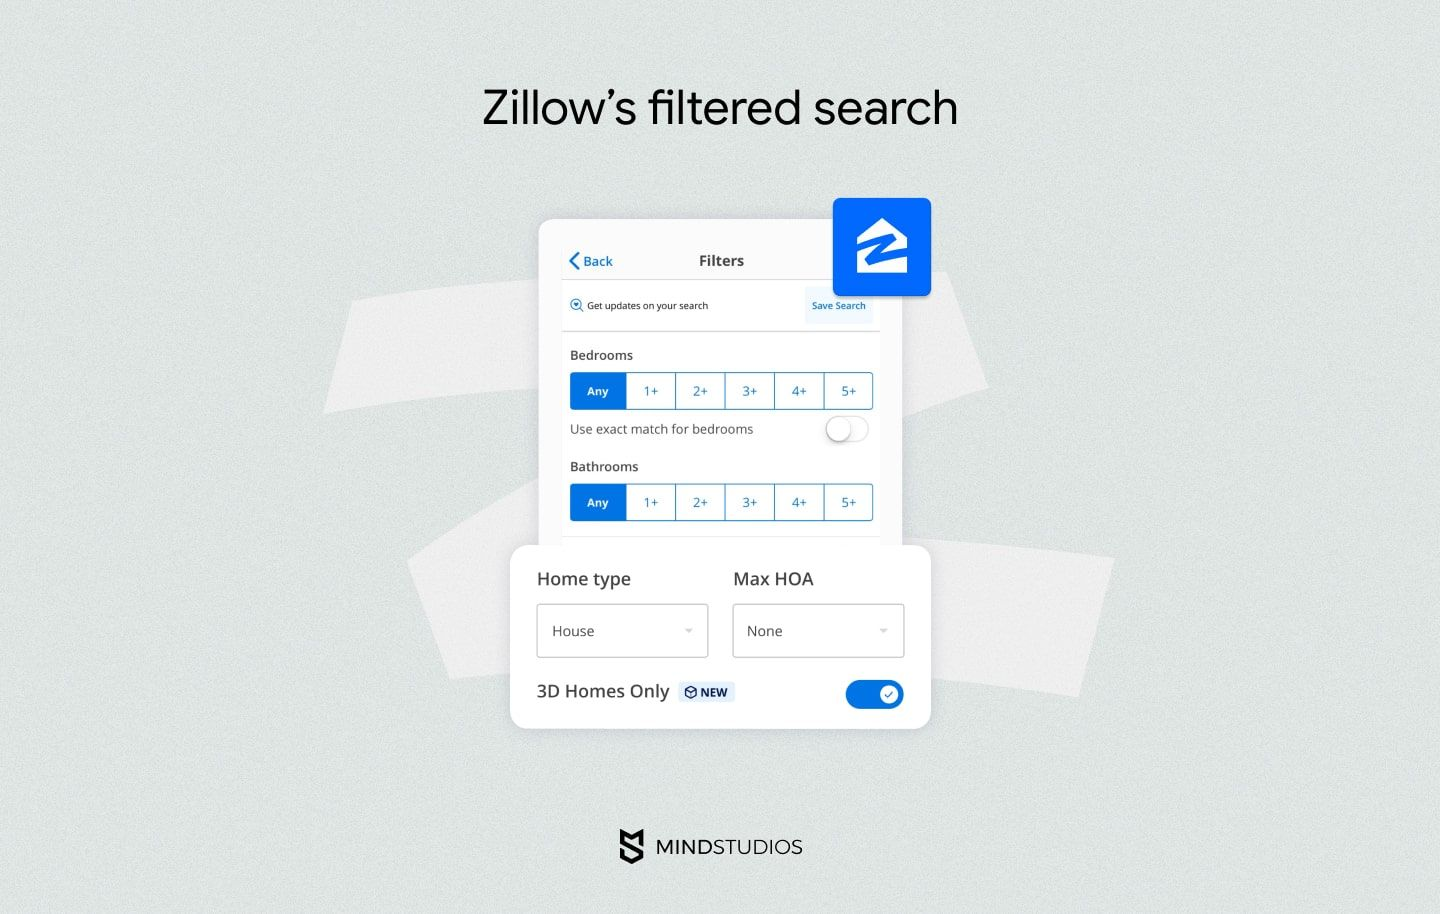 Zillow's filtered search